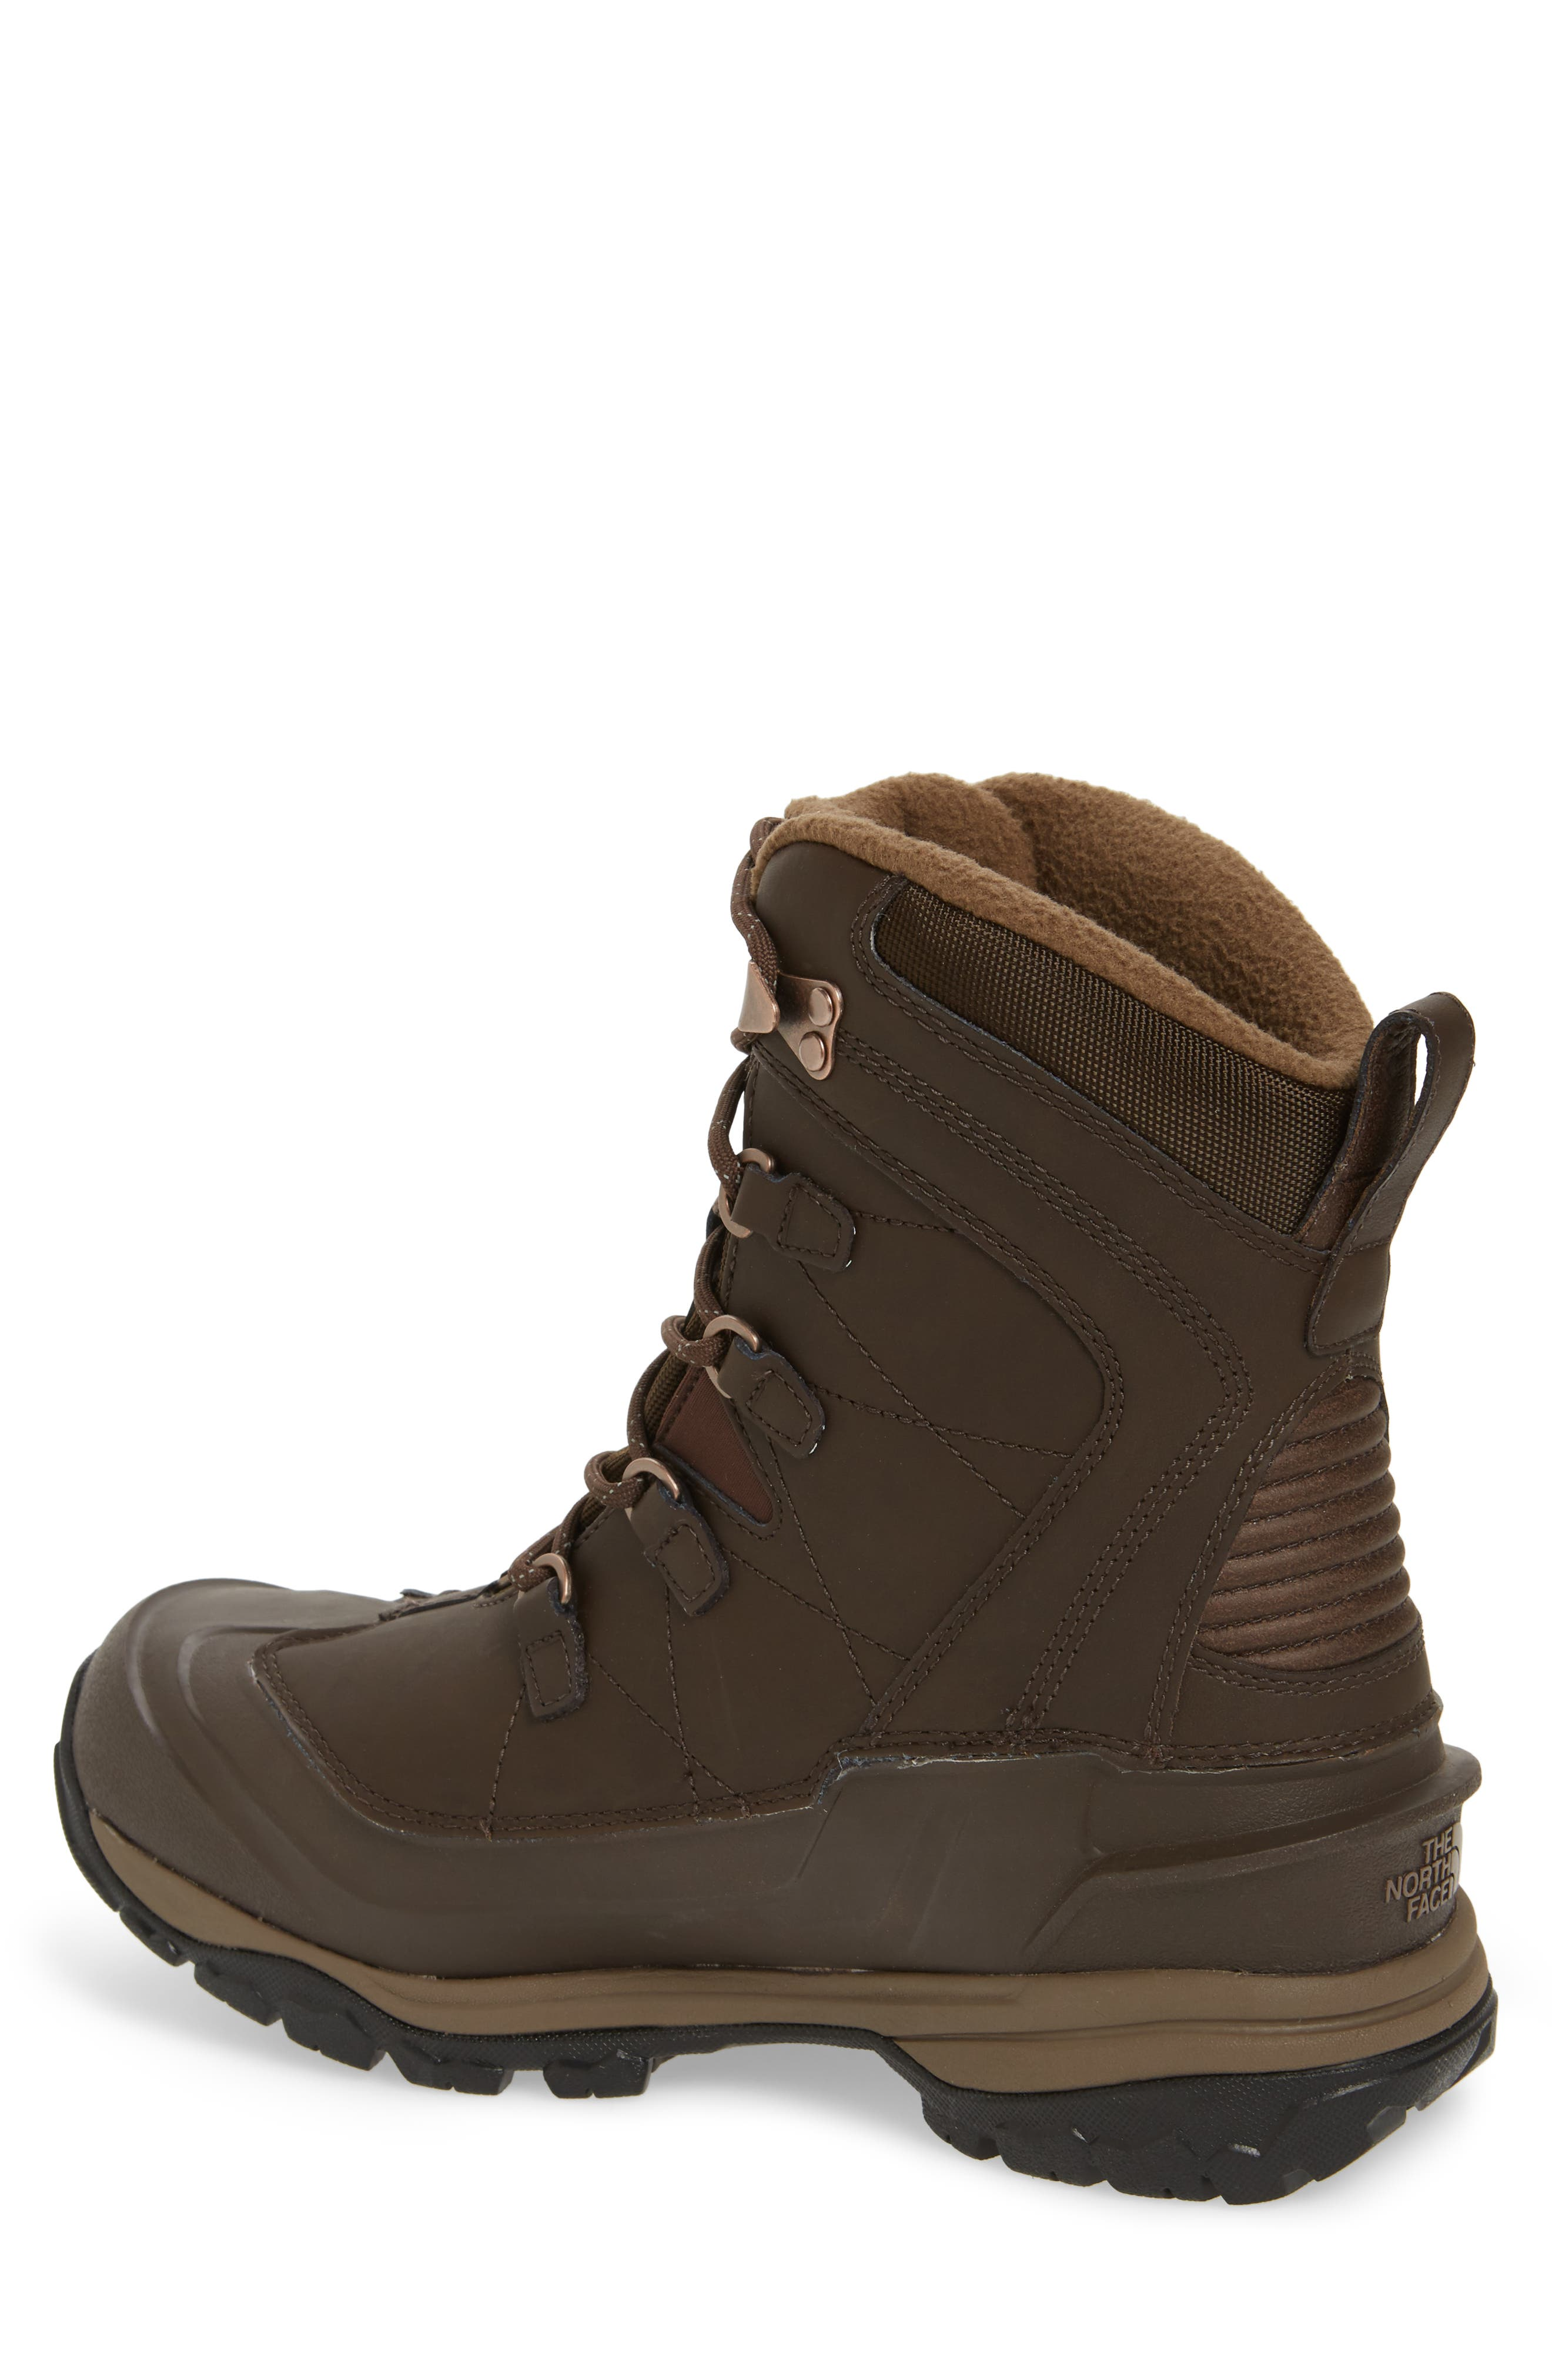 Alternate Image 2  - The North Face Chilkat Evo Waterproof Insulated Snow Boot (Men)